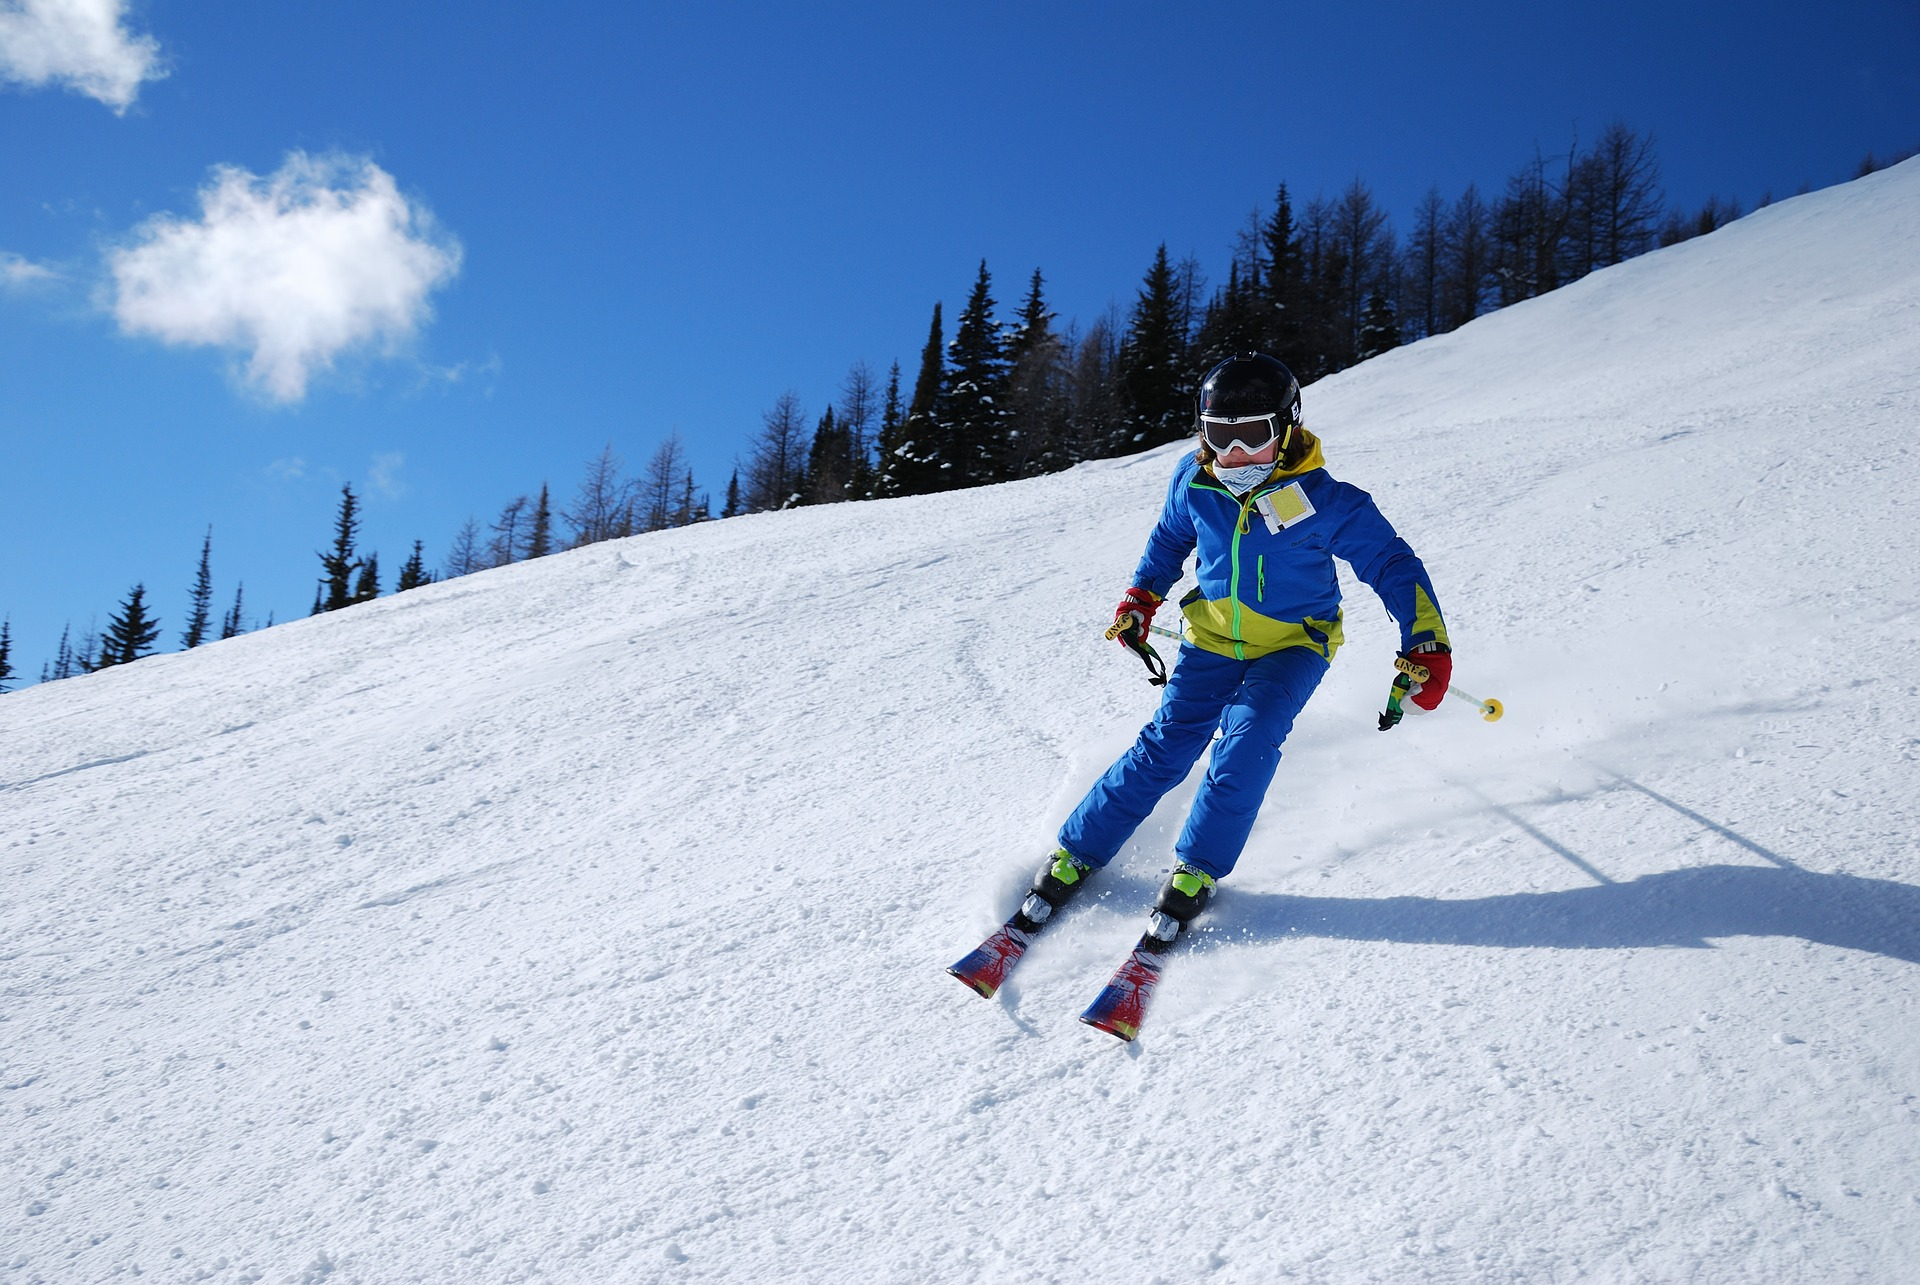 Best Ski Gloves 2019 – Buyer's Guide and Reviews